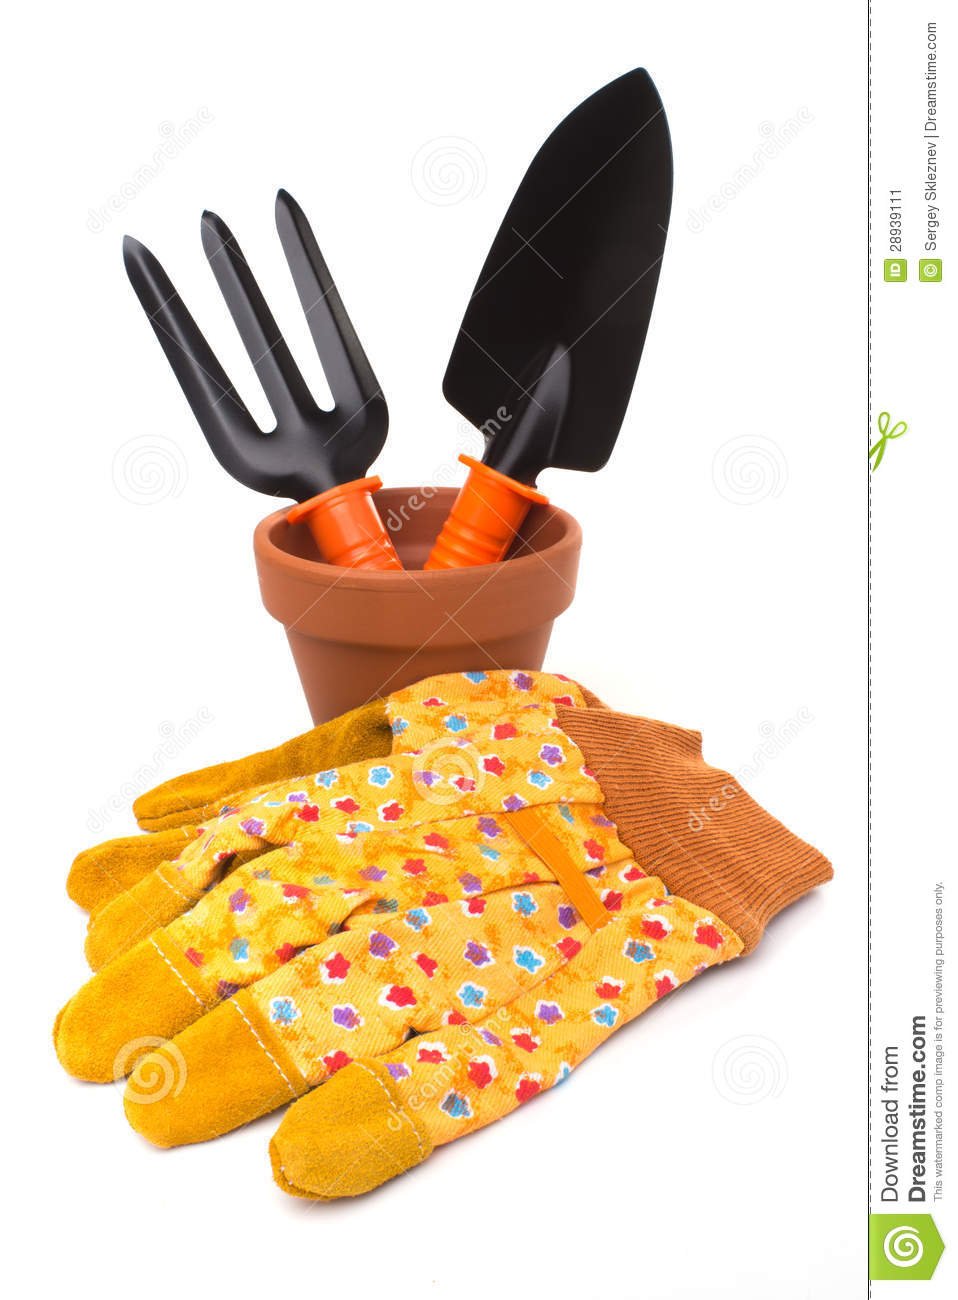 Gardening tools and accessories stock image image 28939111 for Gardening tools and accessories